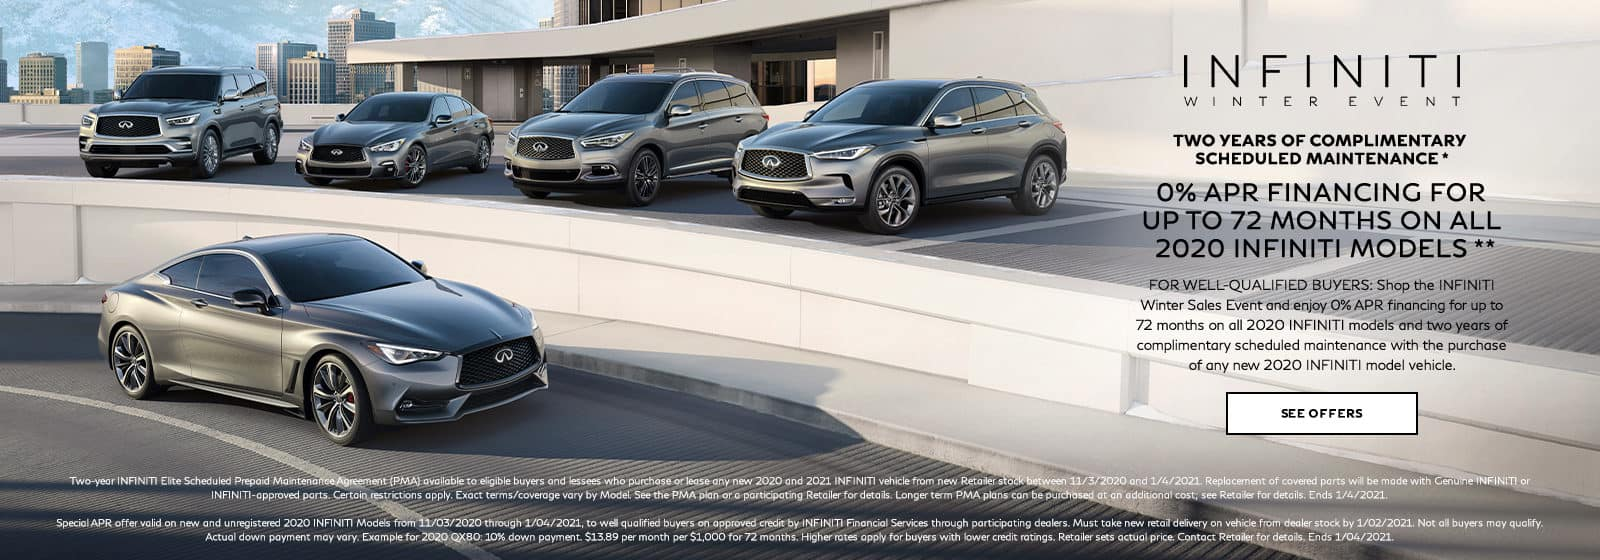 0% APR financing for up to 72 months on all 2020 INFINITI Models with two years of complimentary scheduled maintenance with the purchase of a new 2020 INFINITI model vehicle. For well-qualified buyers. Restrictions may apply. See retailer for complete details. Offer ends 1/4/2021.